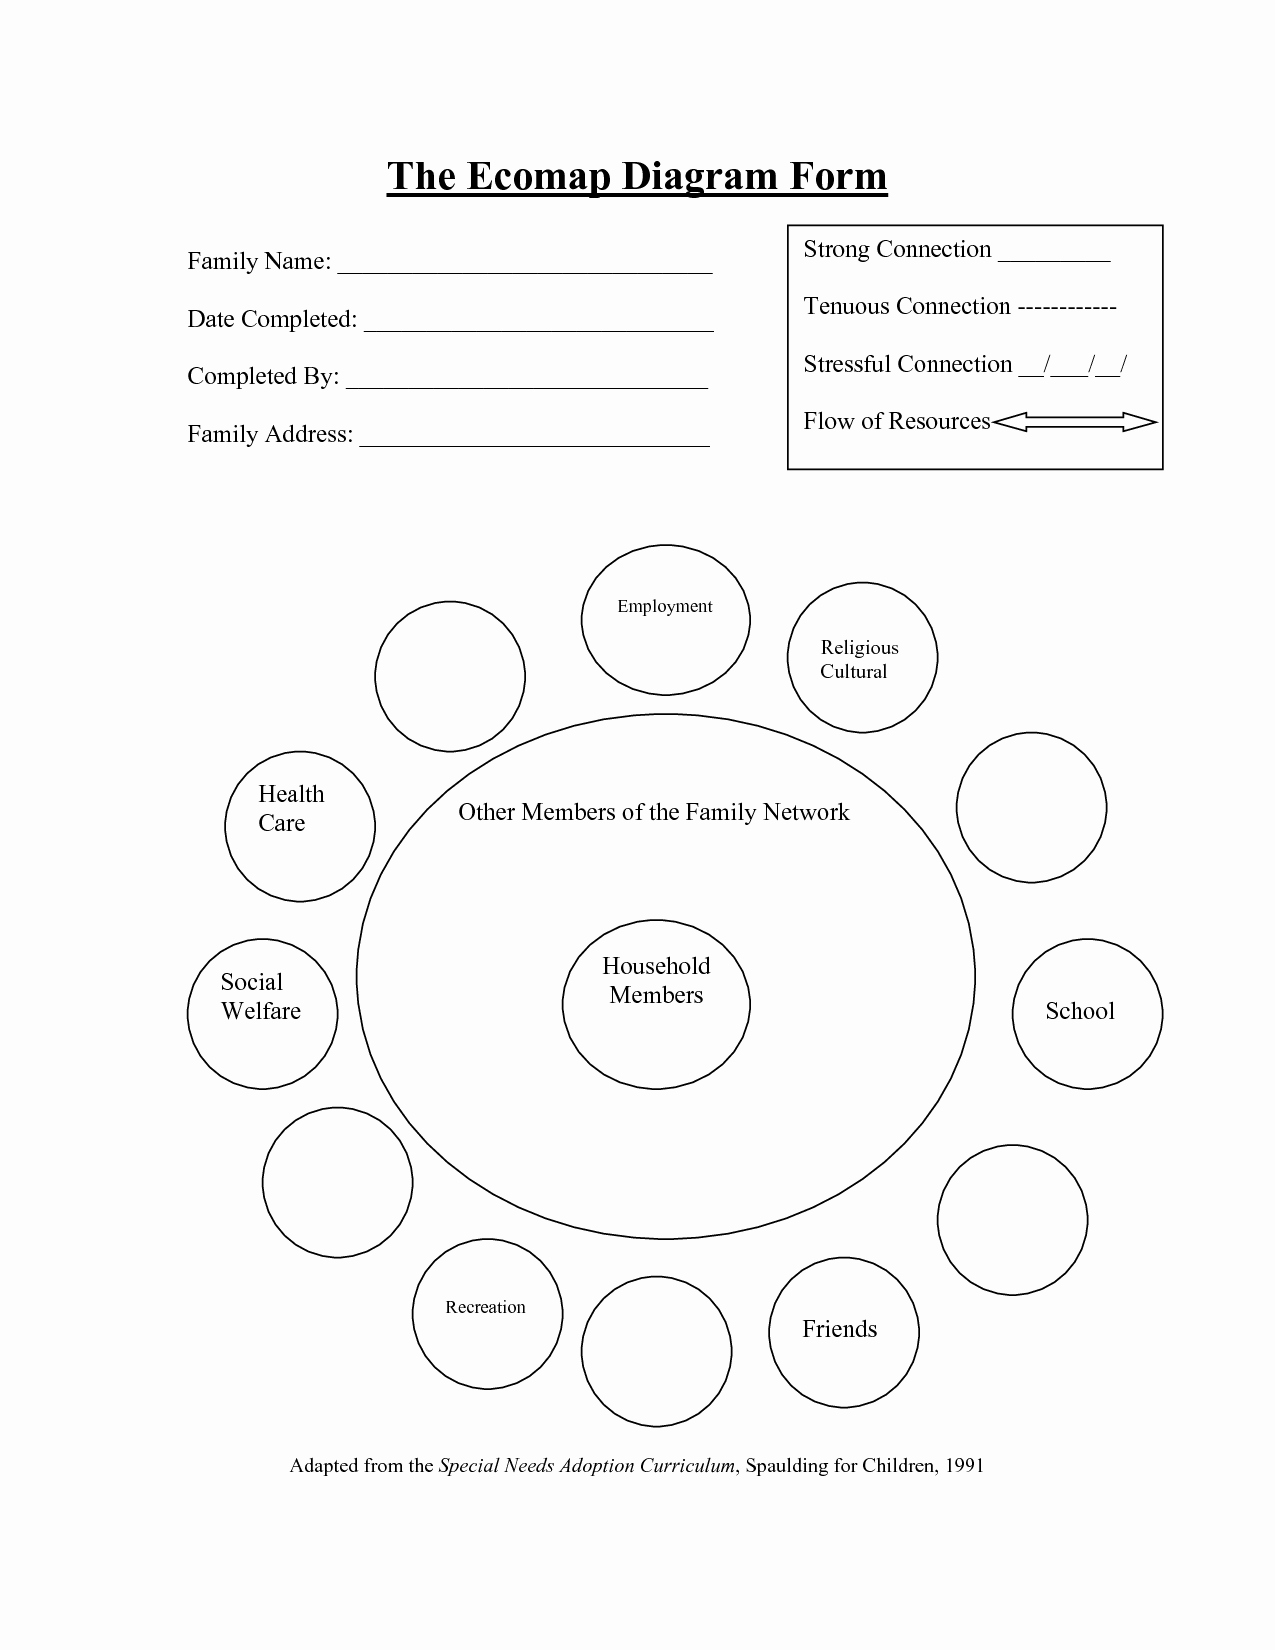 Ecomap social Work Template New Individual E Ap Example at askives